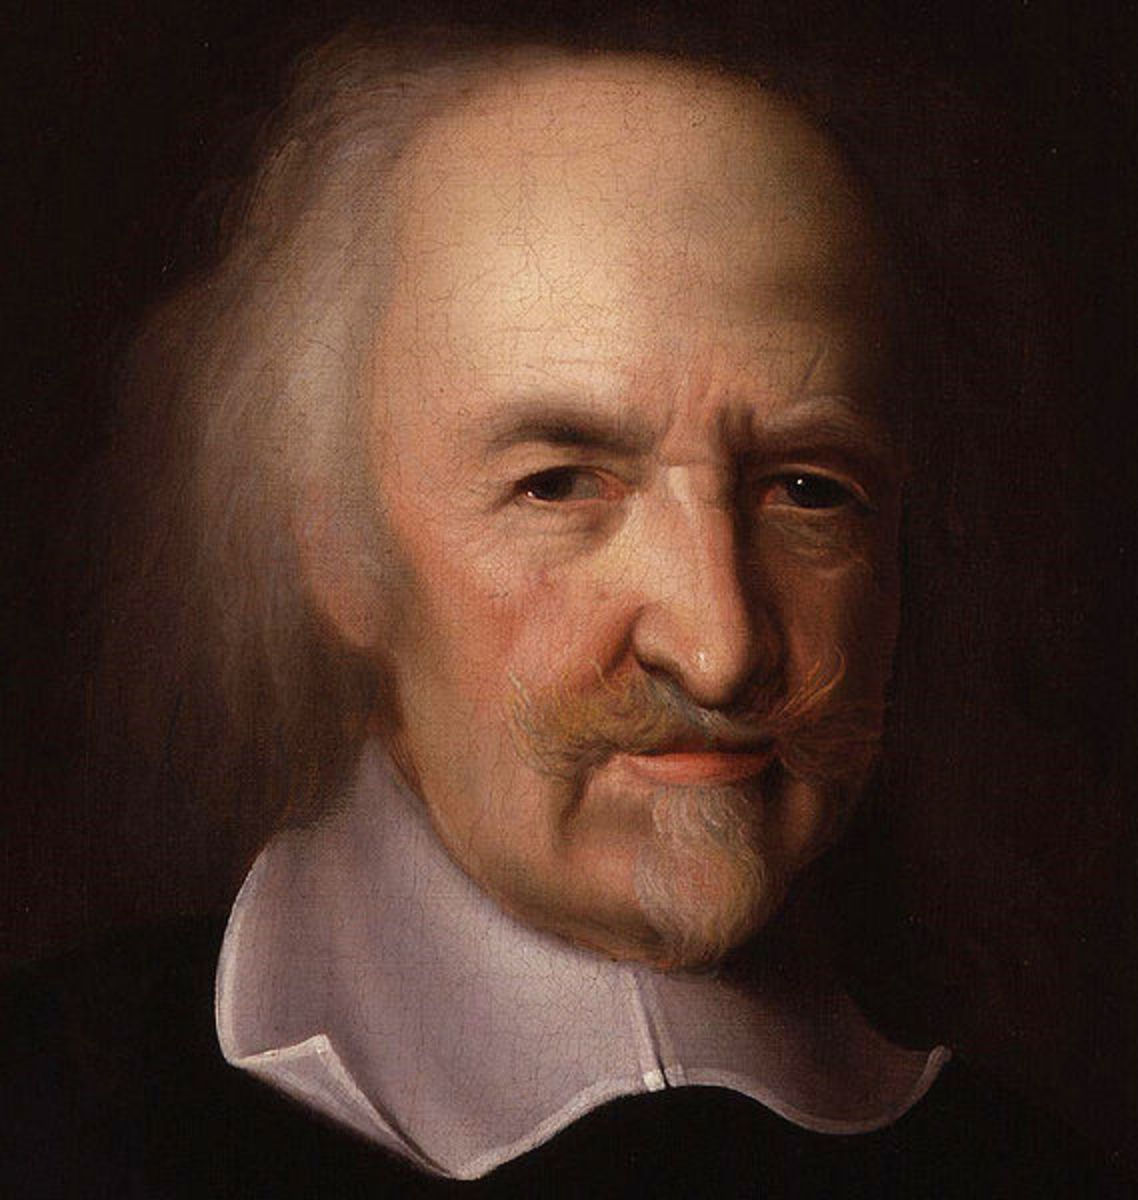 Hobbes was a major proponent of the social contract theory of societal organization.  His philosophy was written during and influenced by the English Civil War.